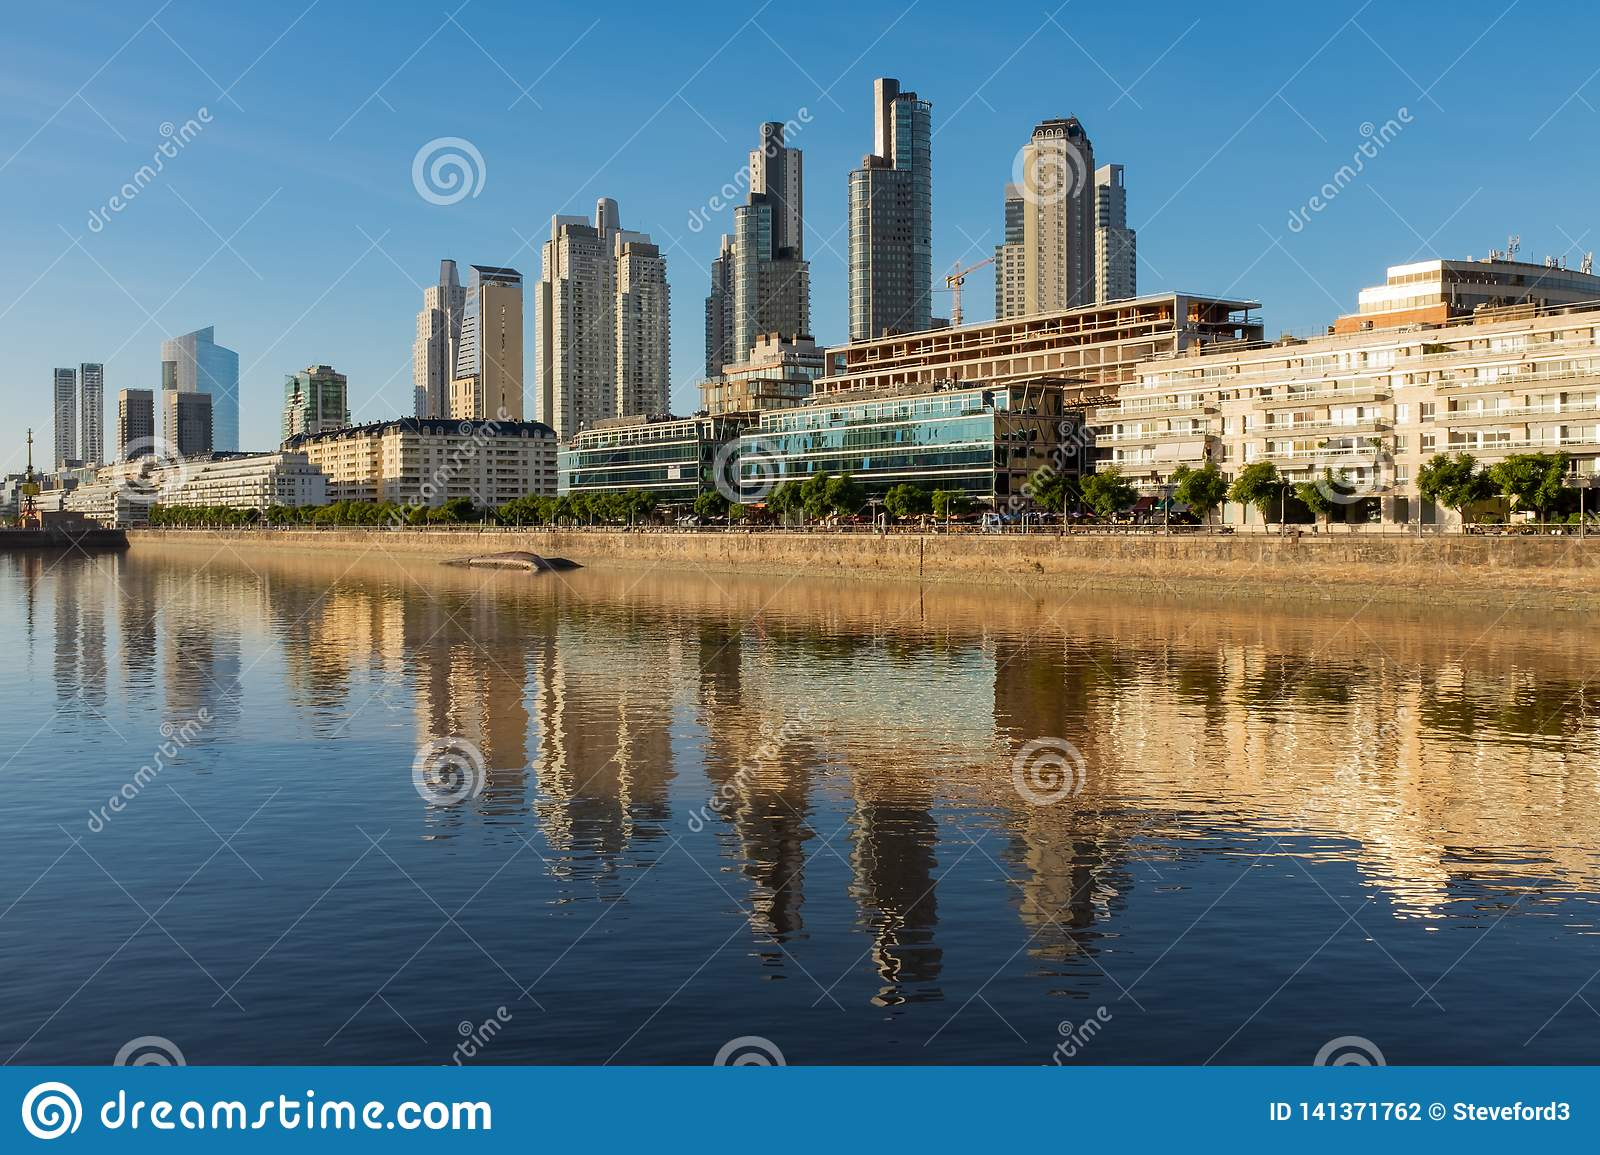 Sweeping view along the Rio de la Plata of the Perto Madero district of Buenos Aires, Argentina with reflections of the modern